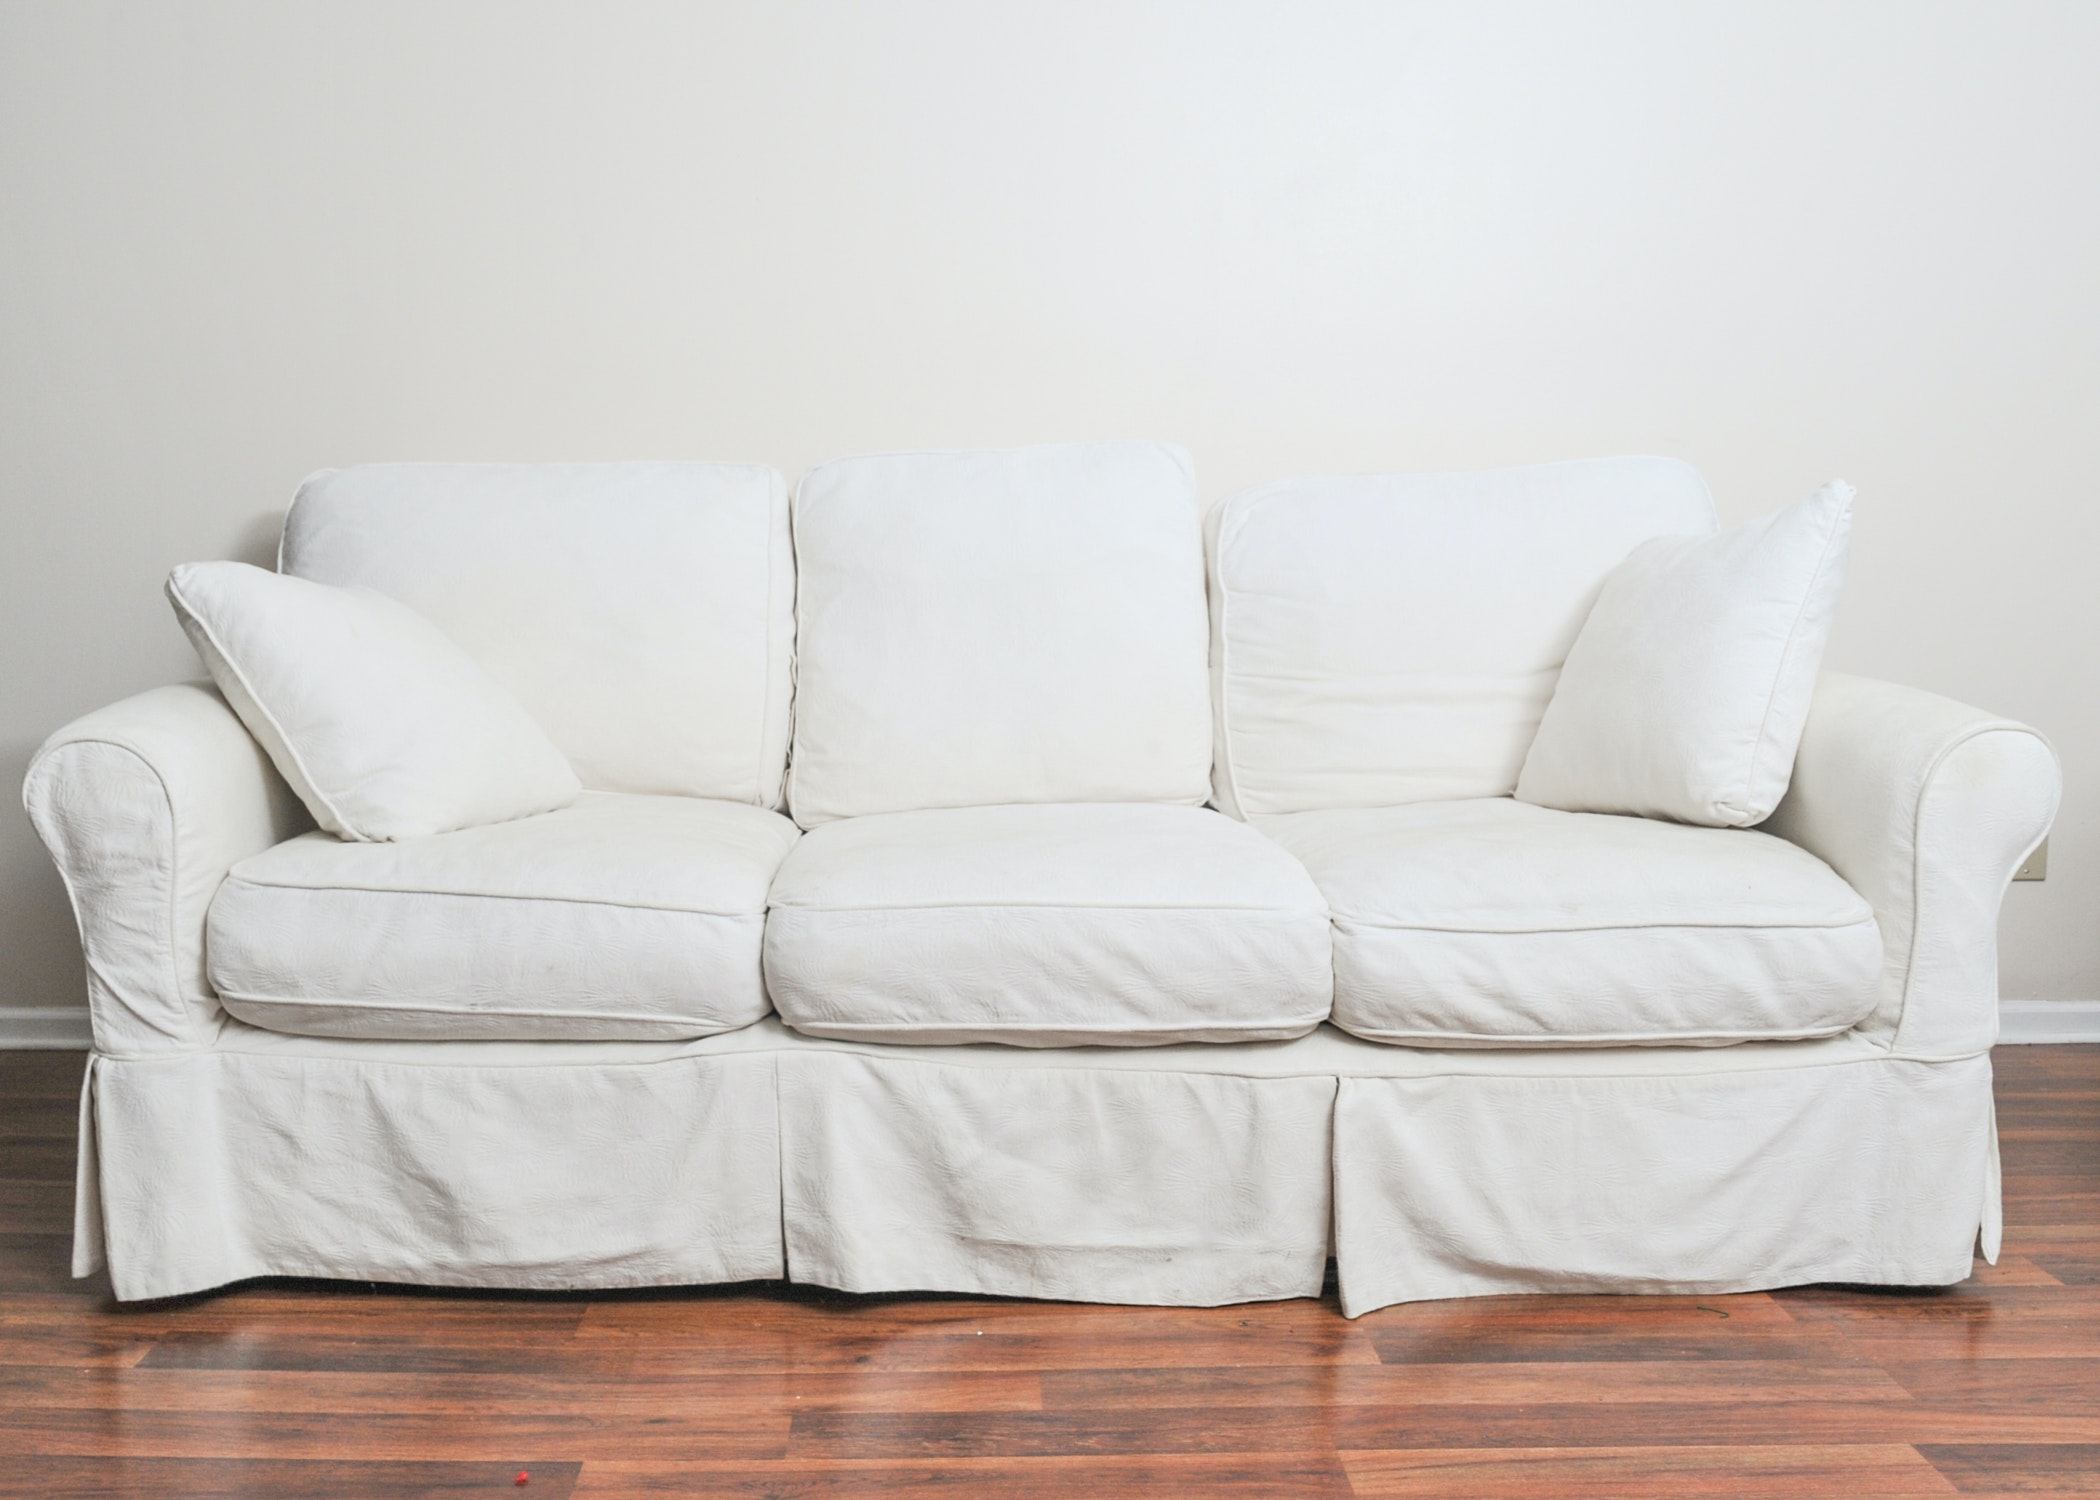 Arhaus Couch With Camden Collection Slipcovers ...